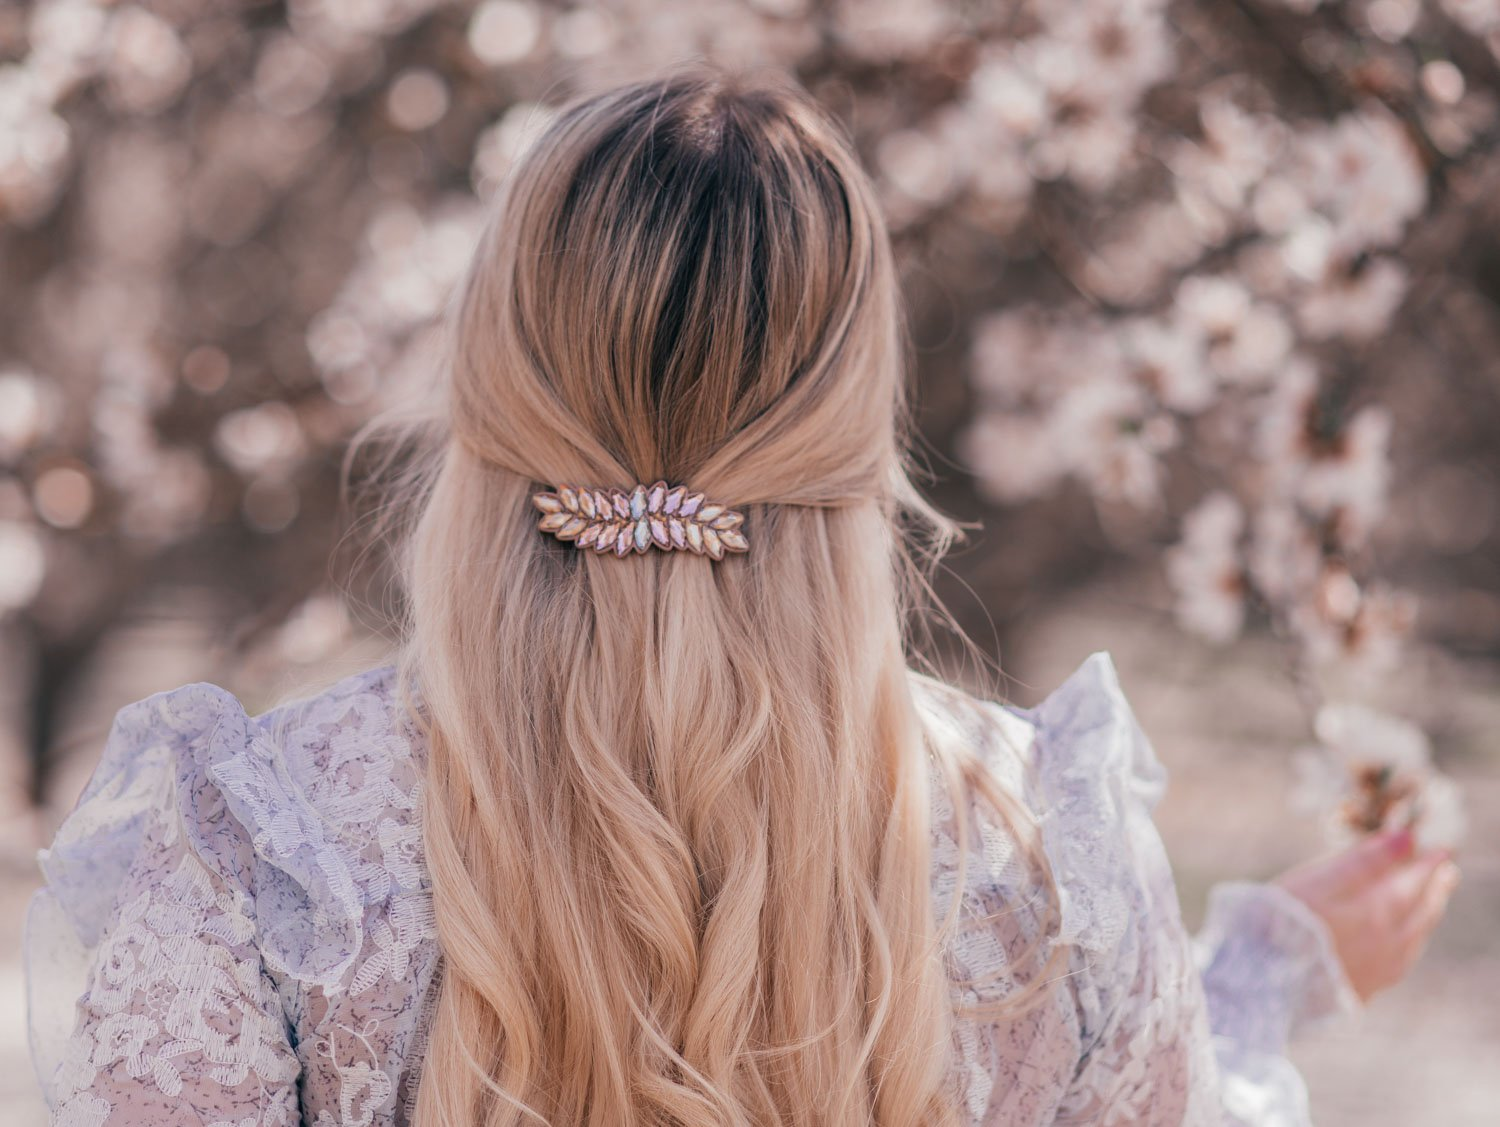 Feminine Fashion Blogger Elizabeth Hugen of Lizzie in Lace shares her girly hair accessories collection including this alexandre de paris hair clip